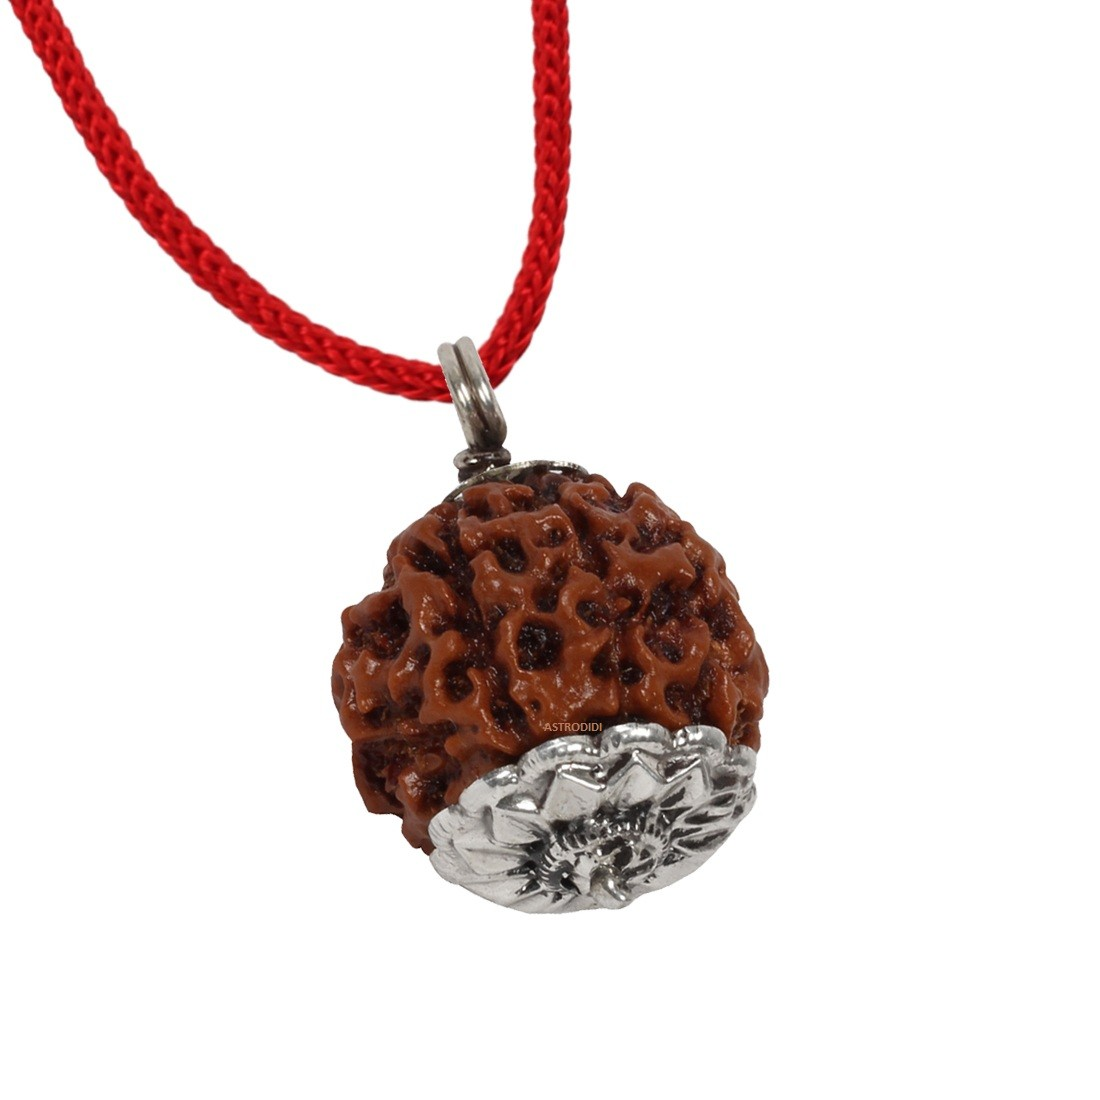 Astrodidi 8 Mukhi Rudraksha (Eight Face Rudraksha) Silver Pendant With Lab Certificate - Big Size Indonesian Rudraksha